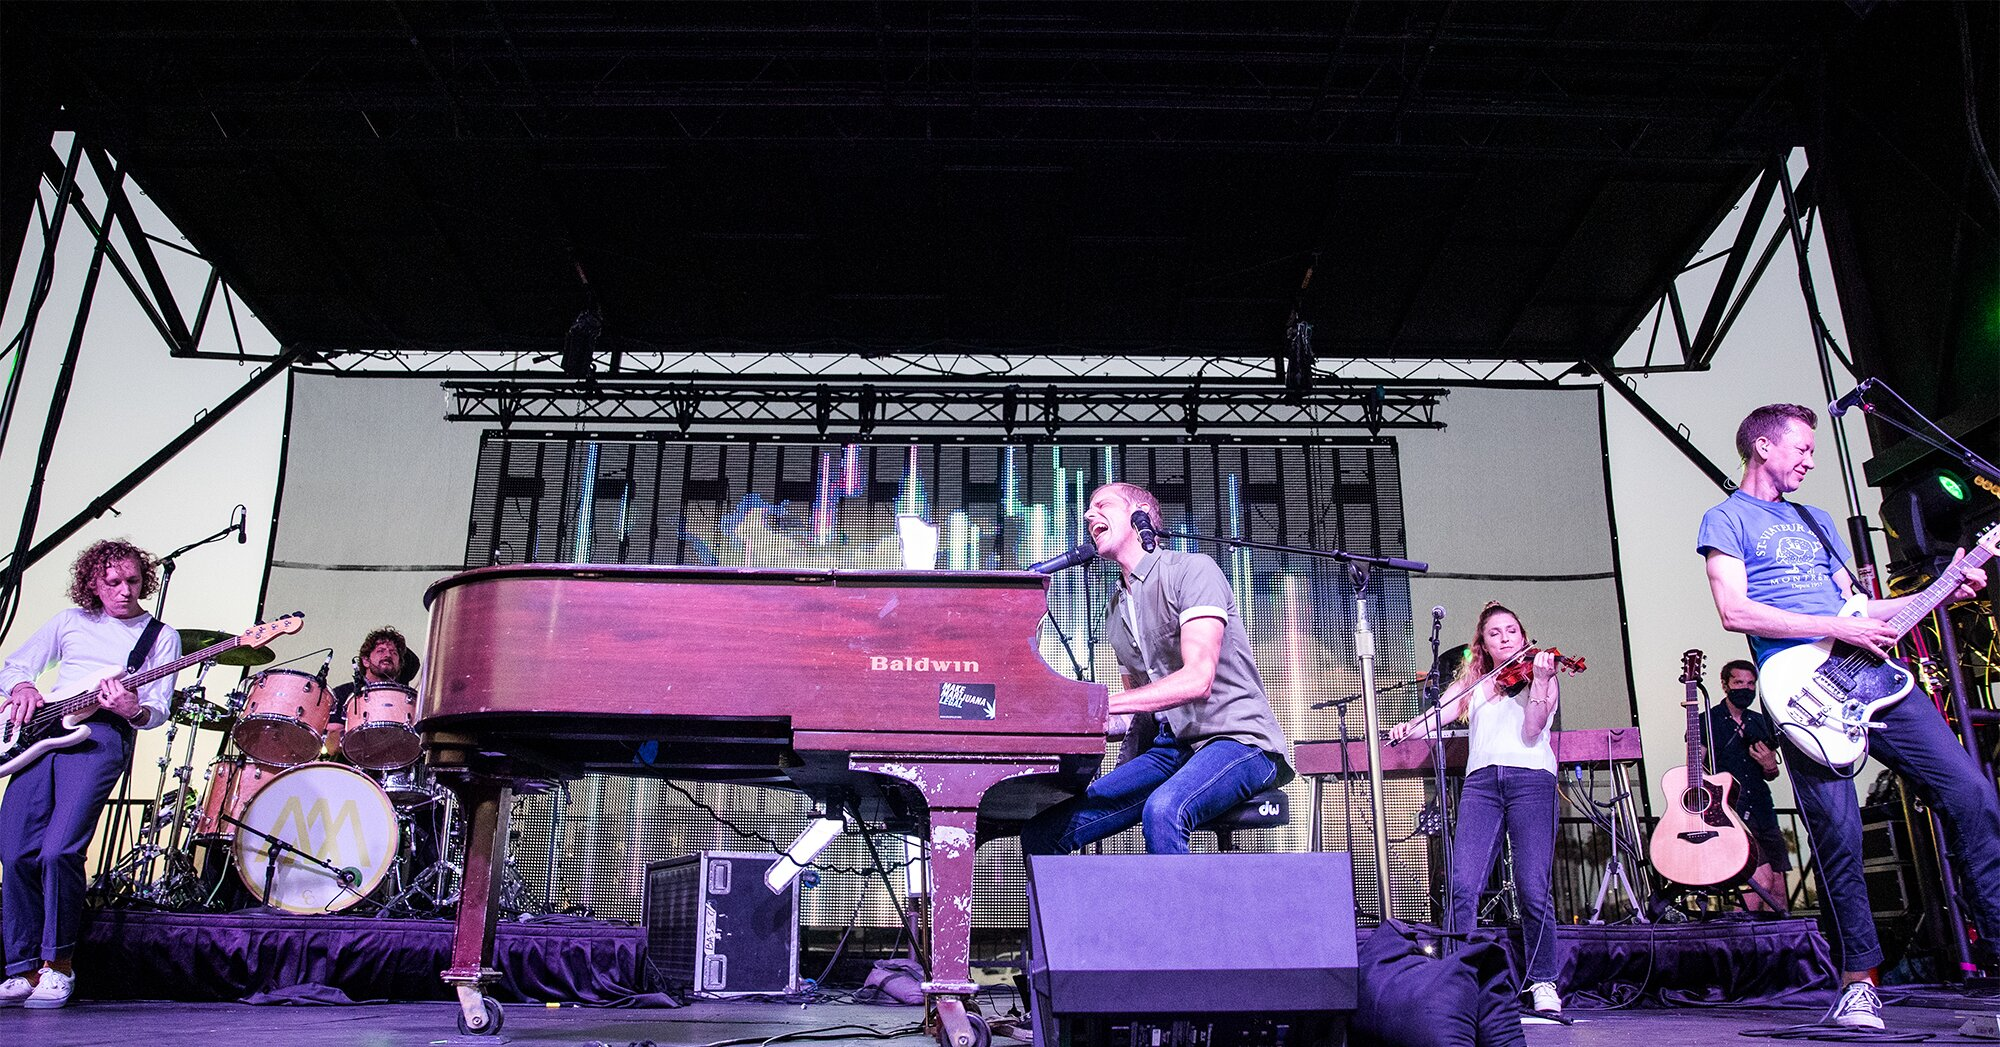 What it was like seeing Andrew McMahon's socially distanced drive-in concert